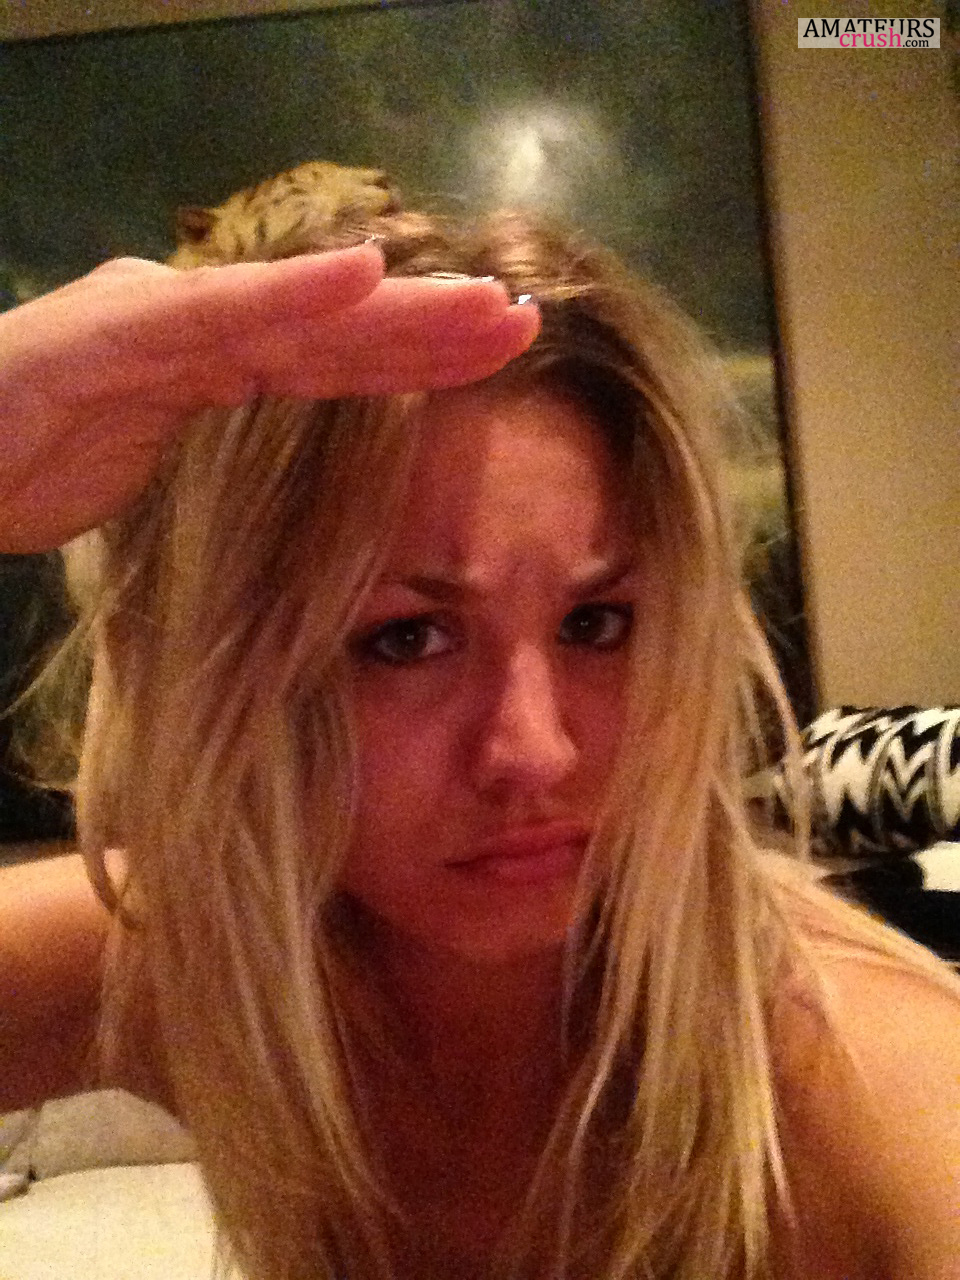 Nude Images Of Kaley Cuoco